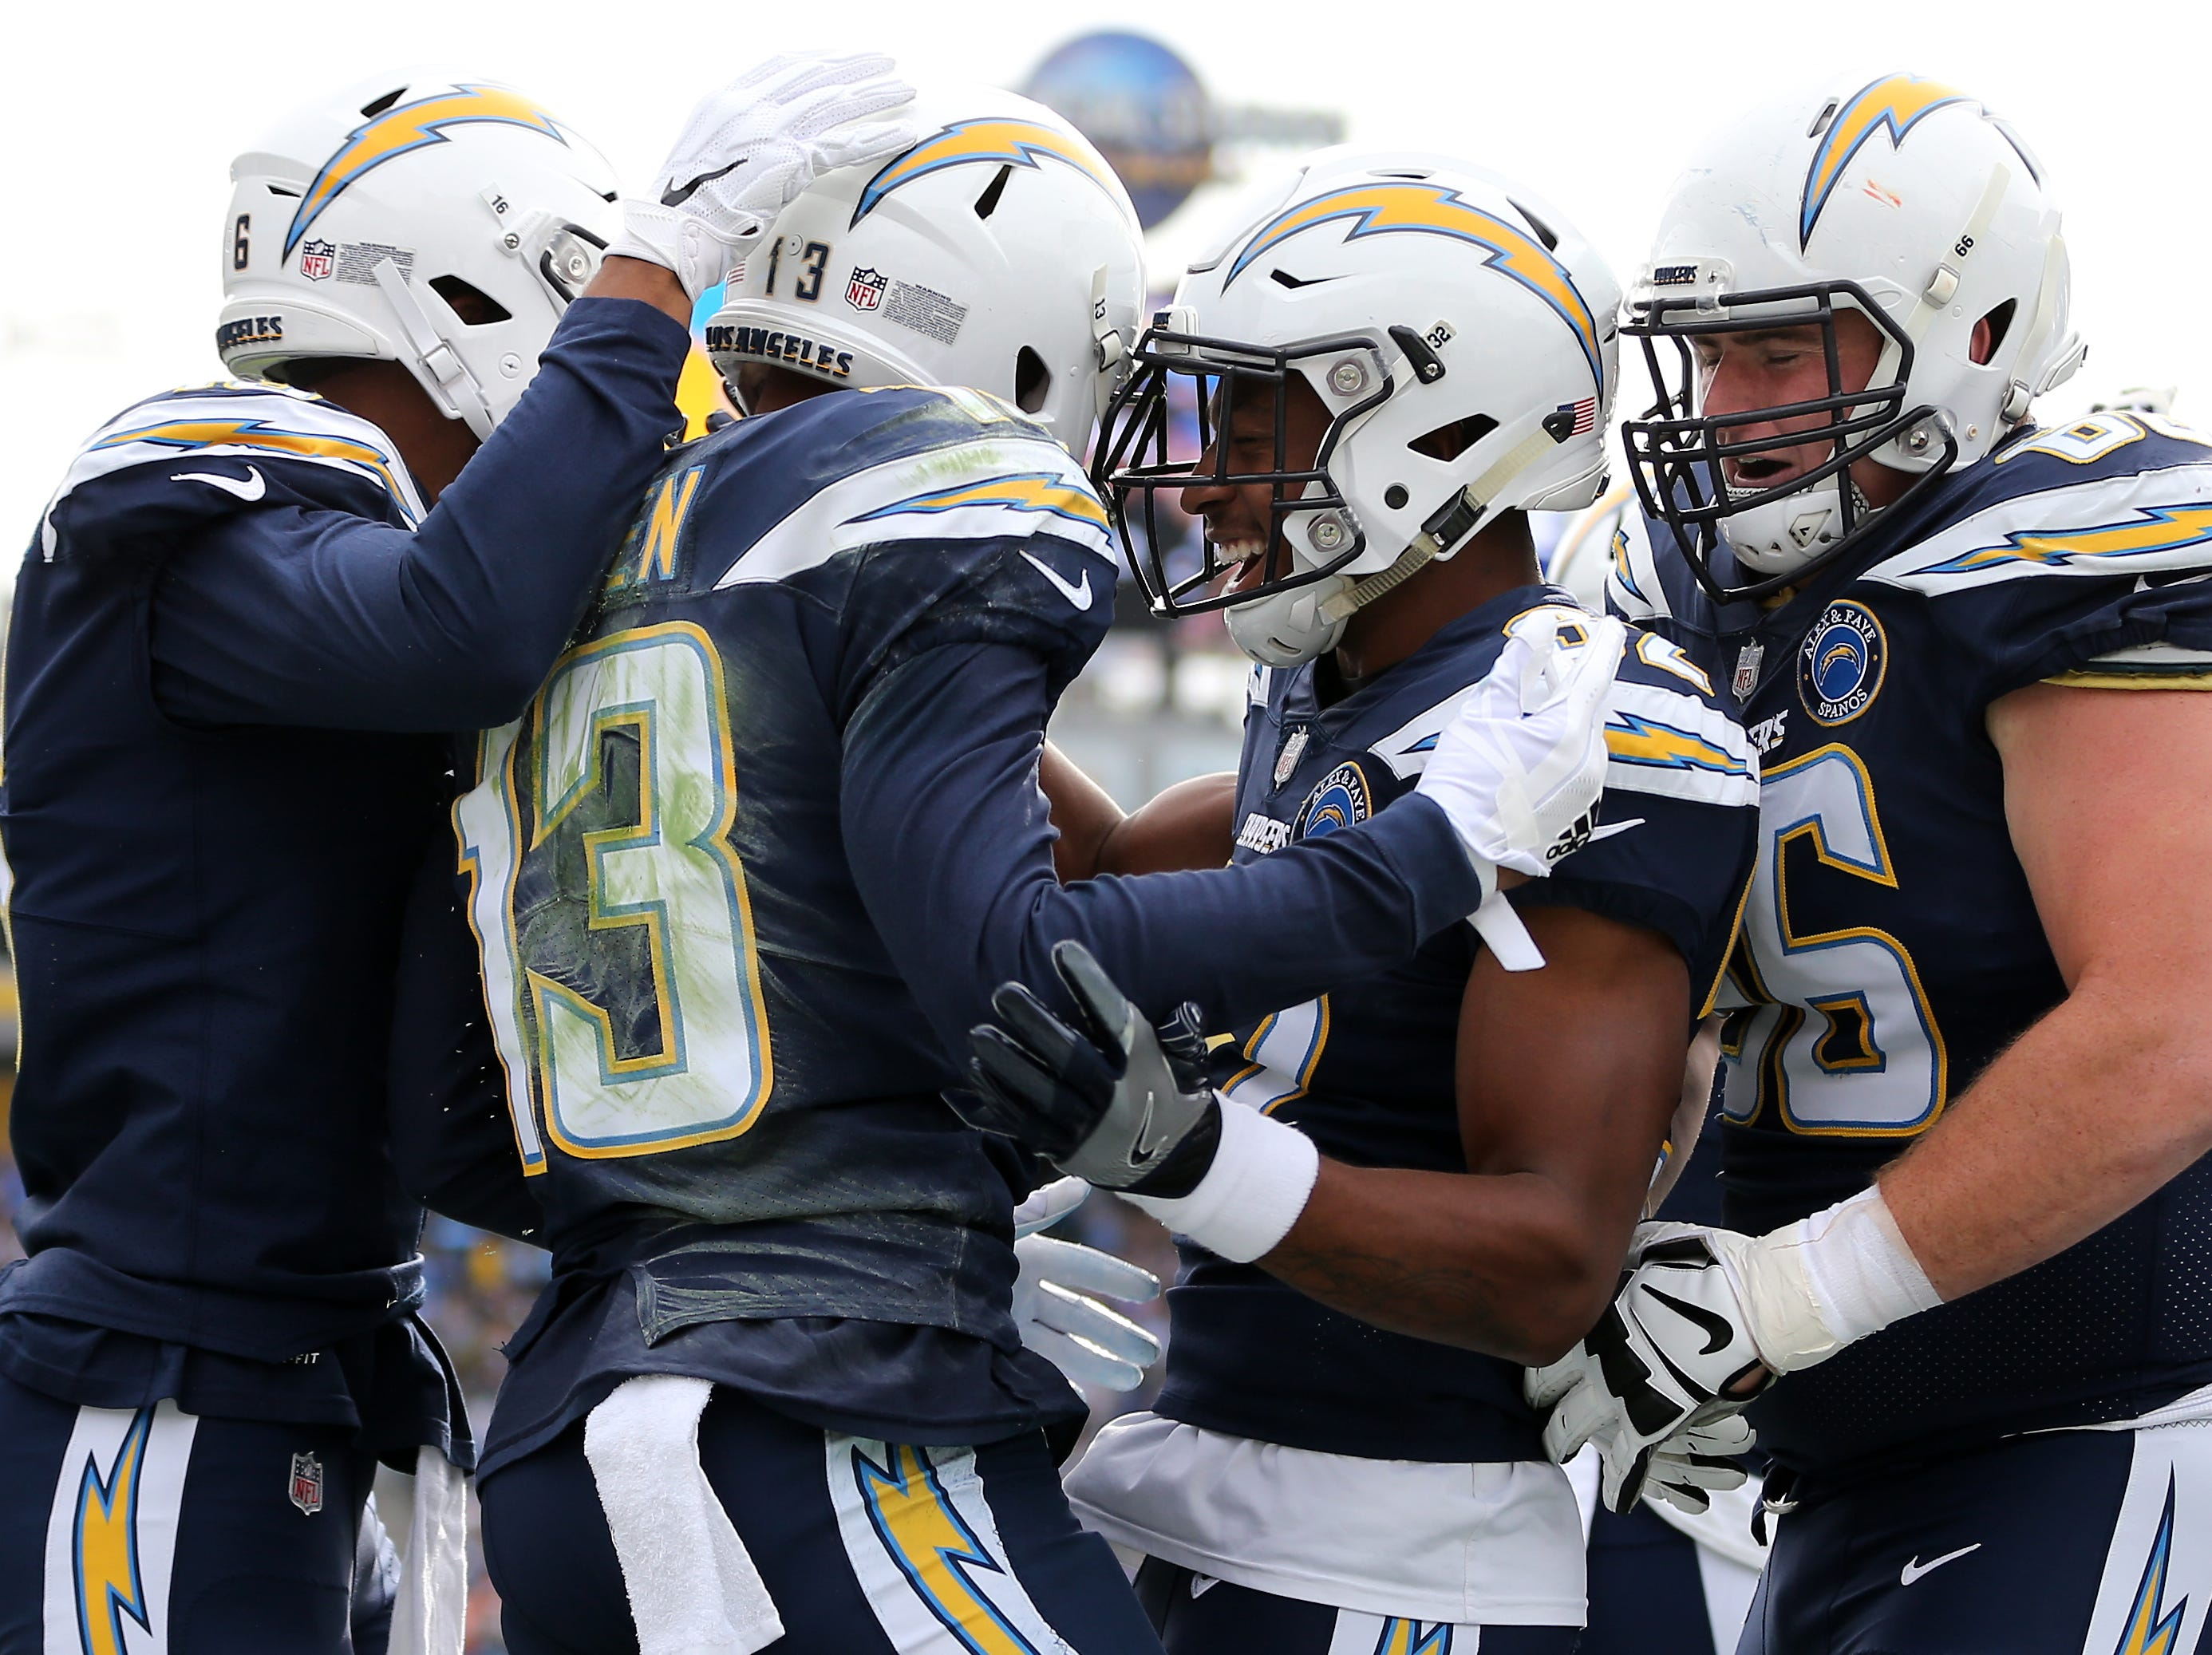 Los Angeles Chargers wide receiver Keenan Allen (13) is congratulated for his touchdown catch by Los Angeles Chargers running back Justin Jackson (32), second from right, and Los Angeles Chargers offensive guard Dan Feeney (66), far right, in the first quarter of a Week 14 NFL football game, Sunday, Dec. 9, 2018, at StubHub Center in Carson, California.